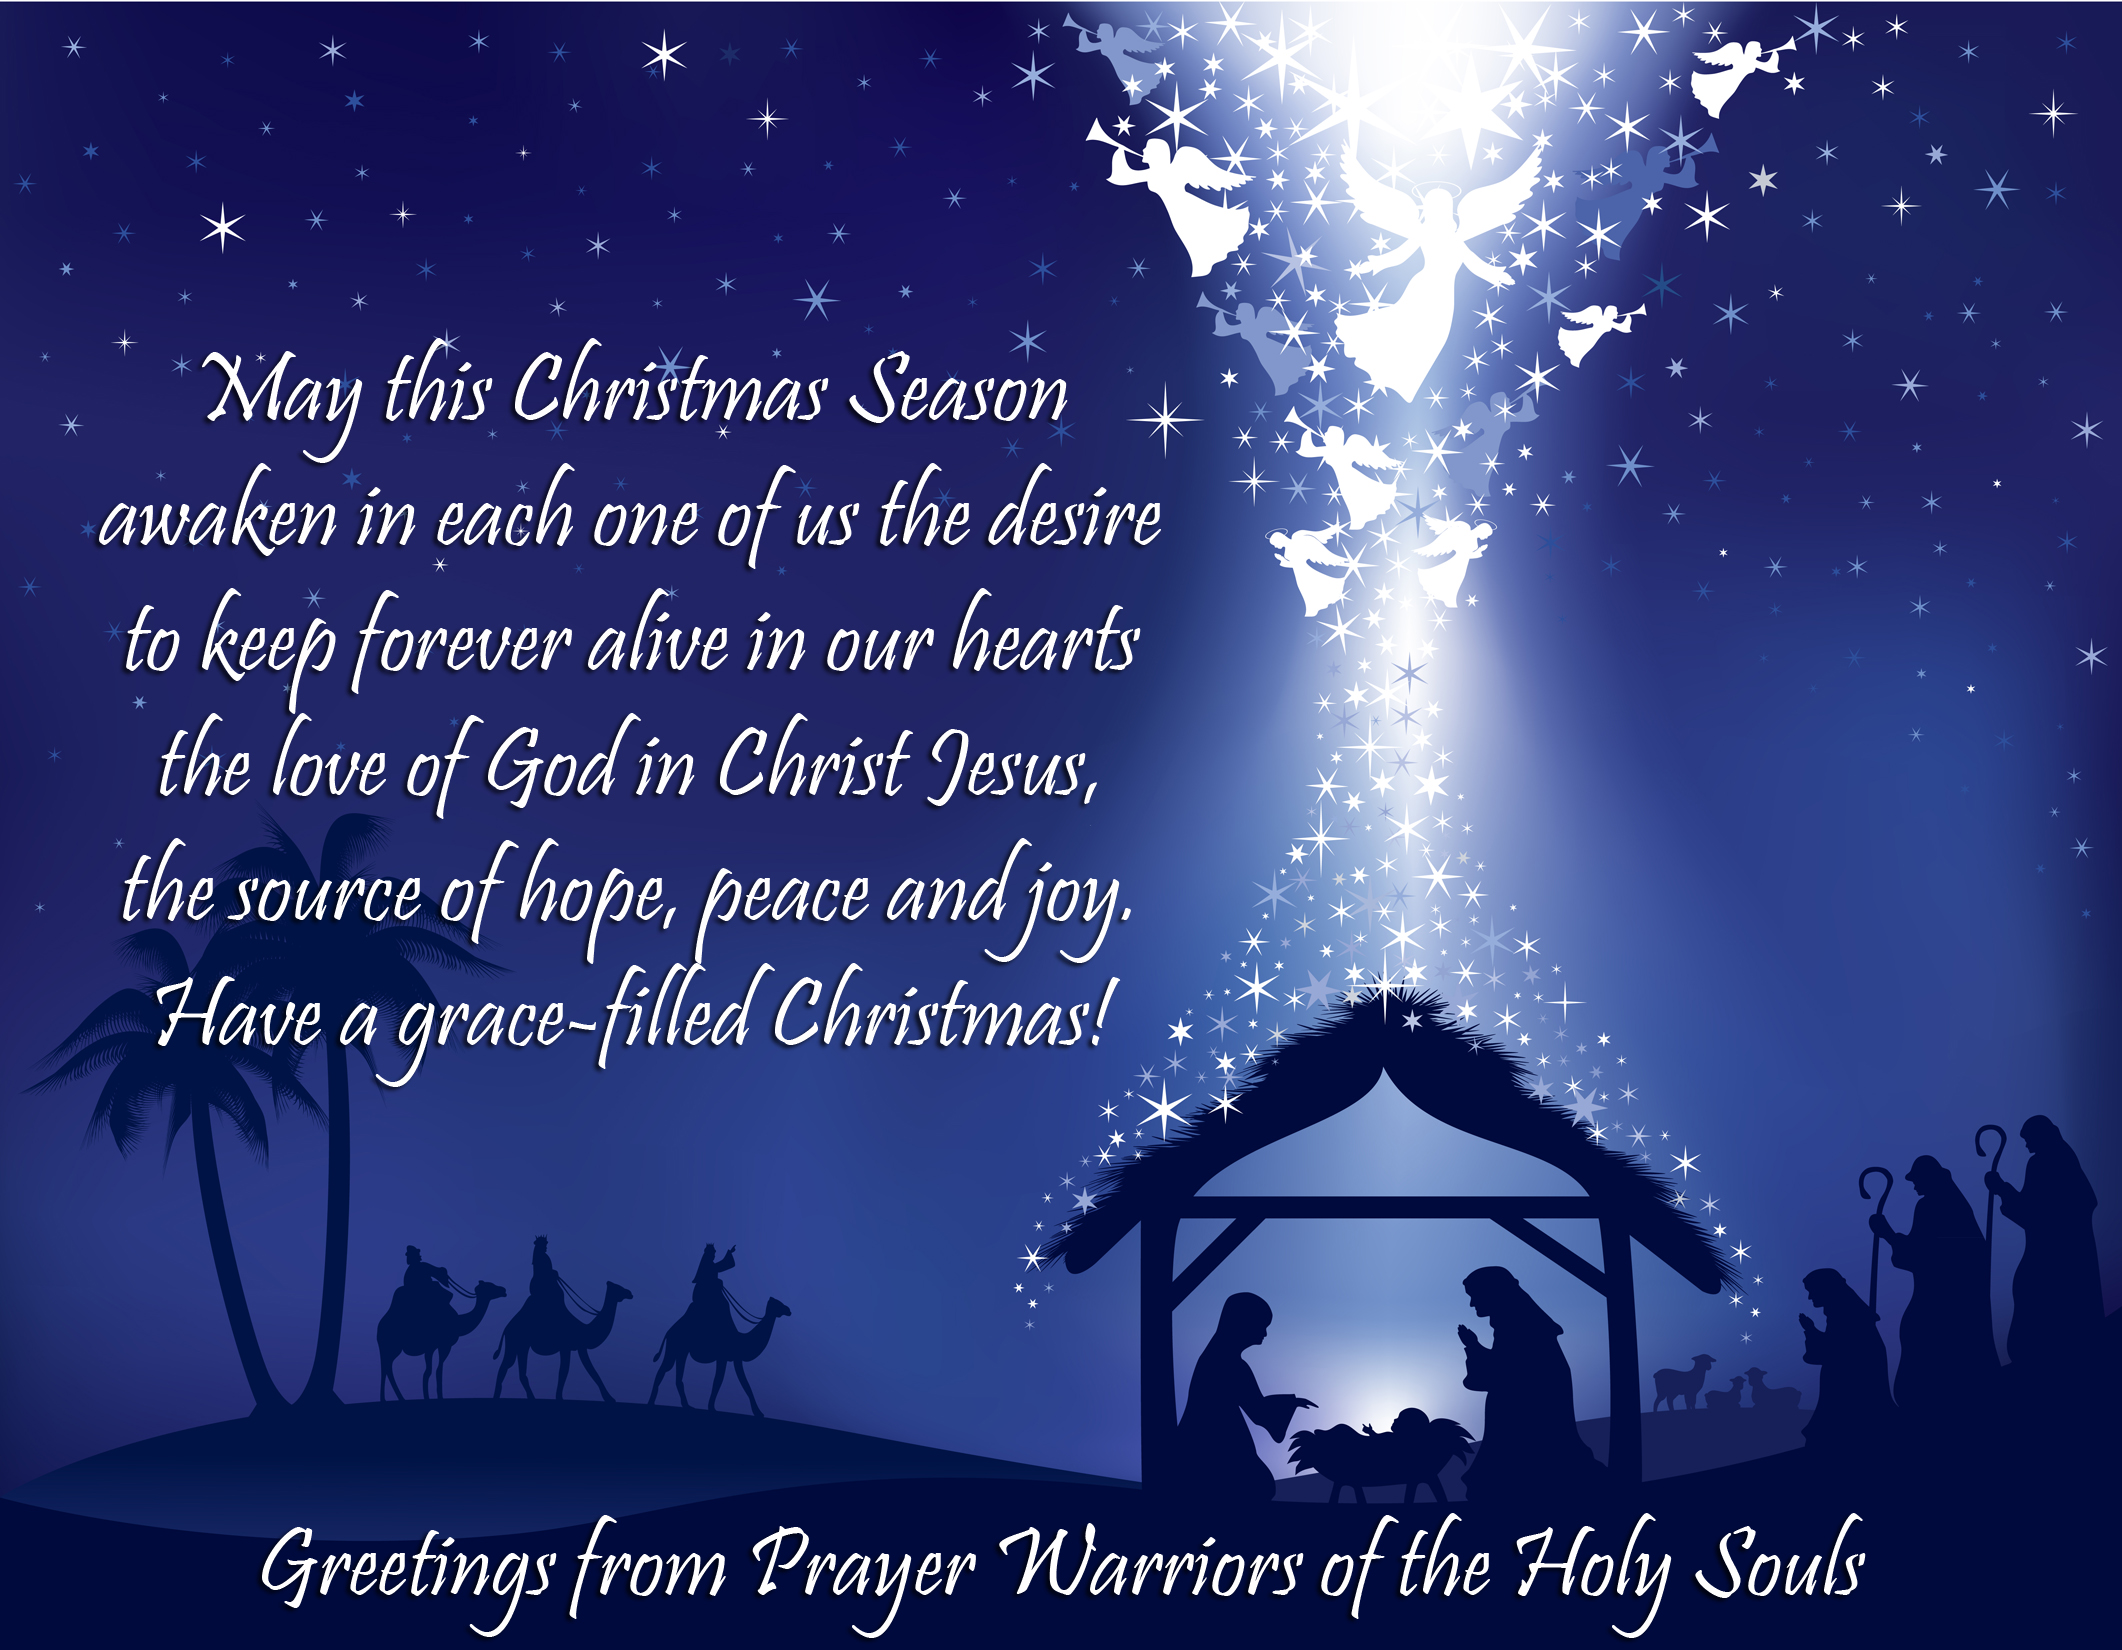 Merry christmas prayer warriors of the holy souls christmas greetings 2015 m4hsunfo